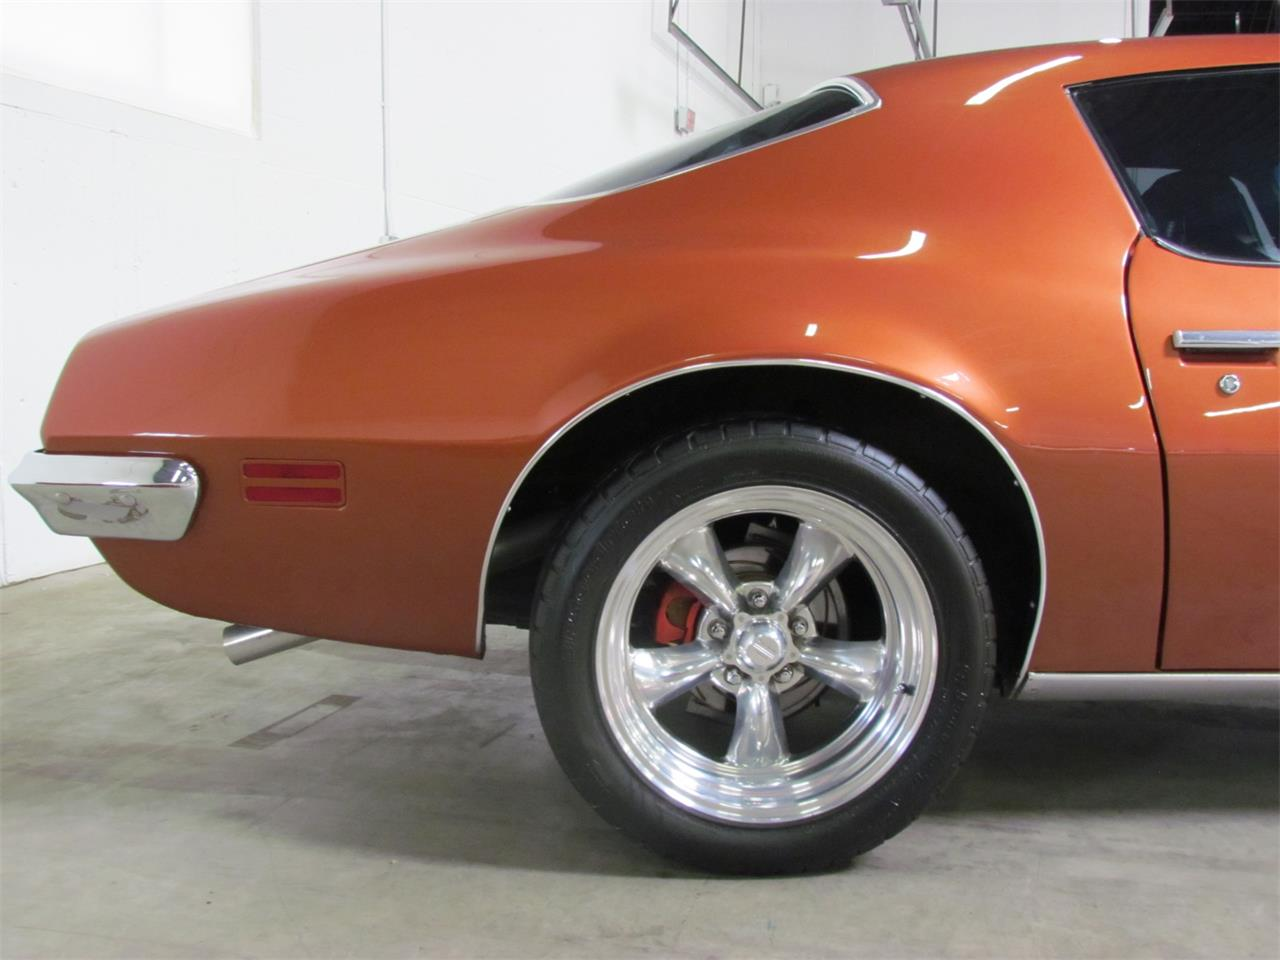 1972 Pontiac Firebird for sale in Gurnee, IL – photo 17